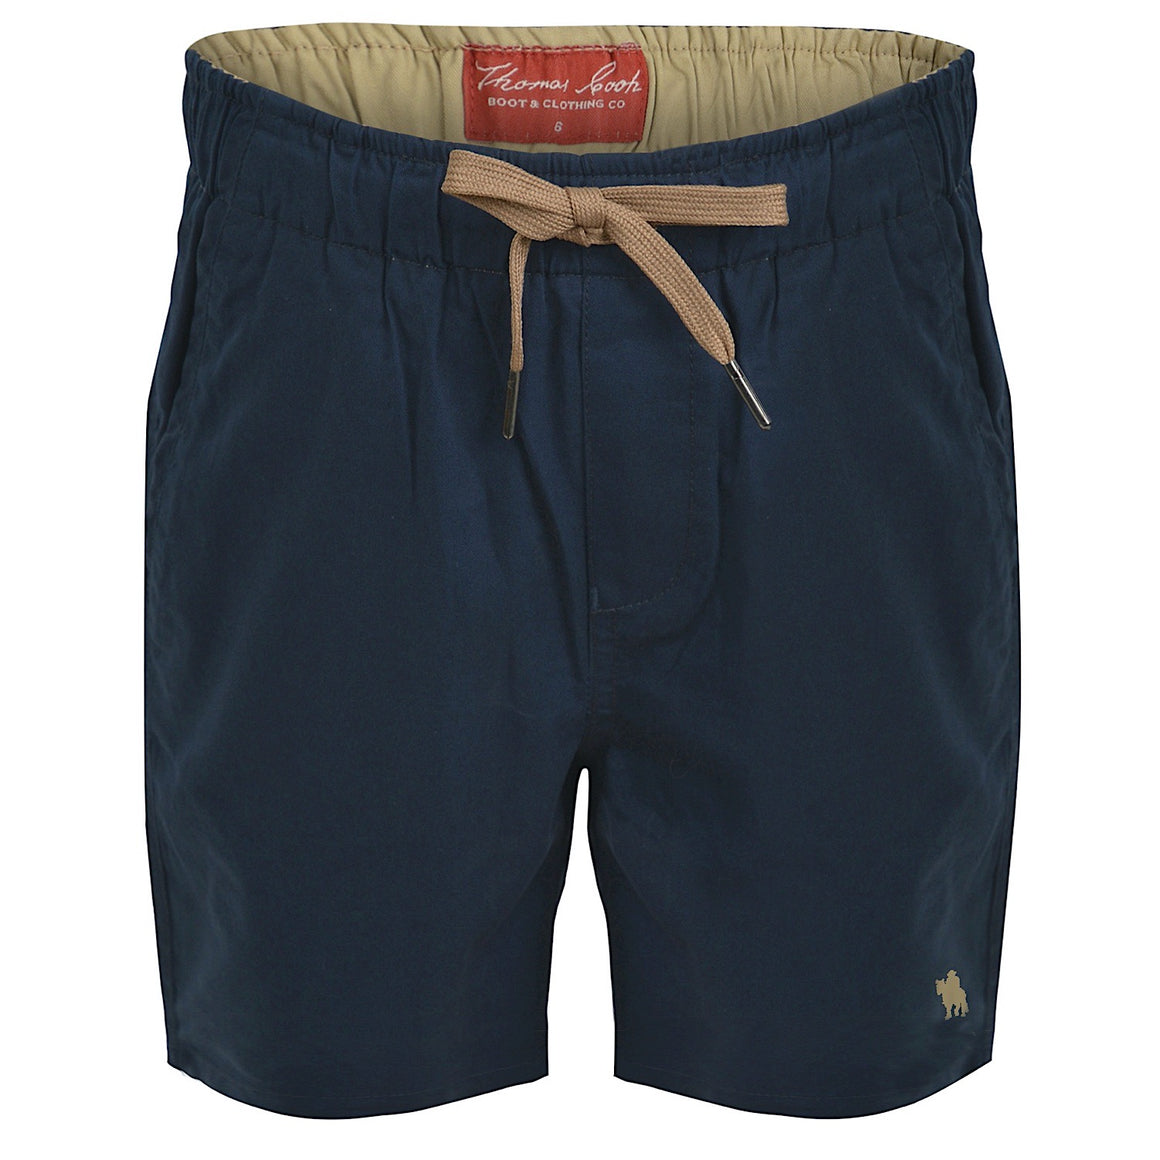 Thomas Cook Boys Darcy Shorts Navy